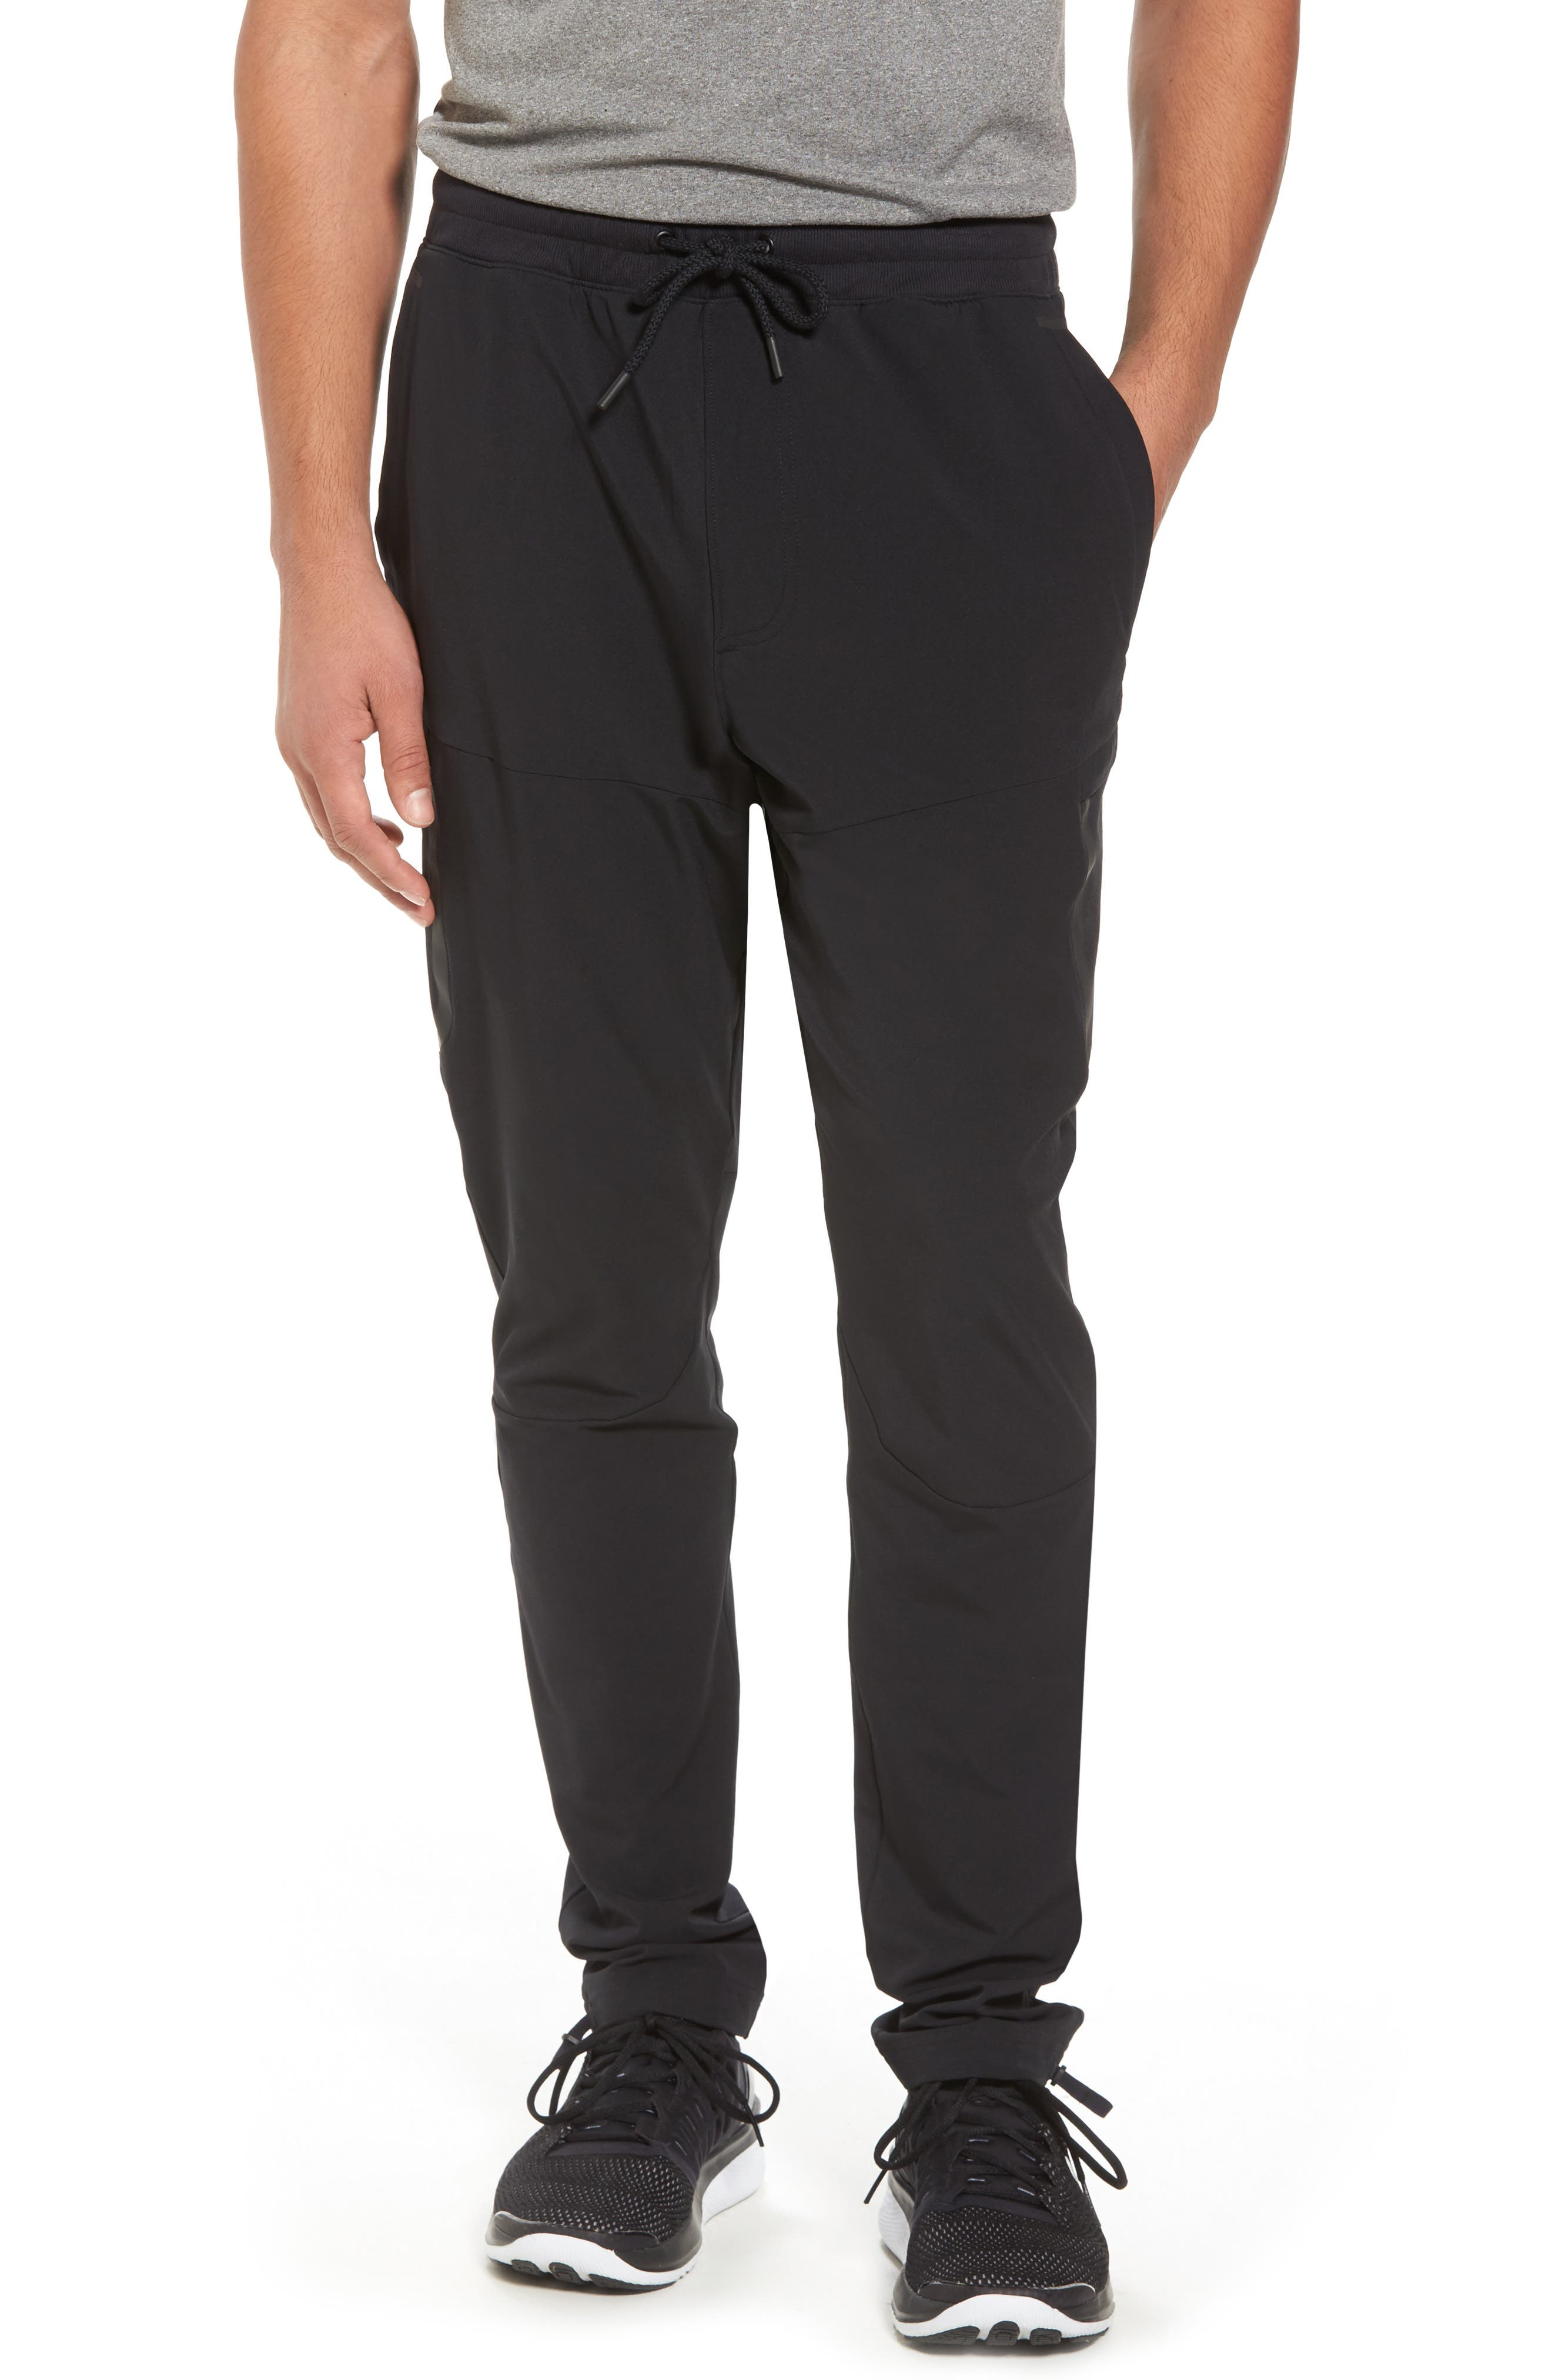 Alternate Image 1 Selected - Under Armour Sportstyle Elite Cargo Track Pants